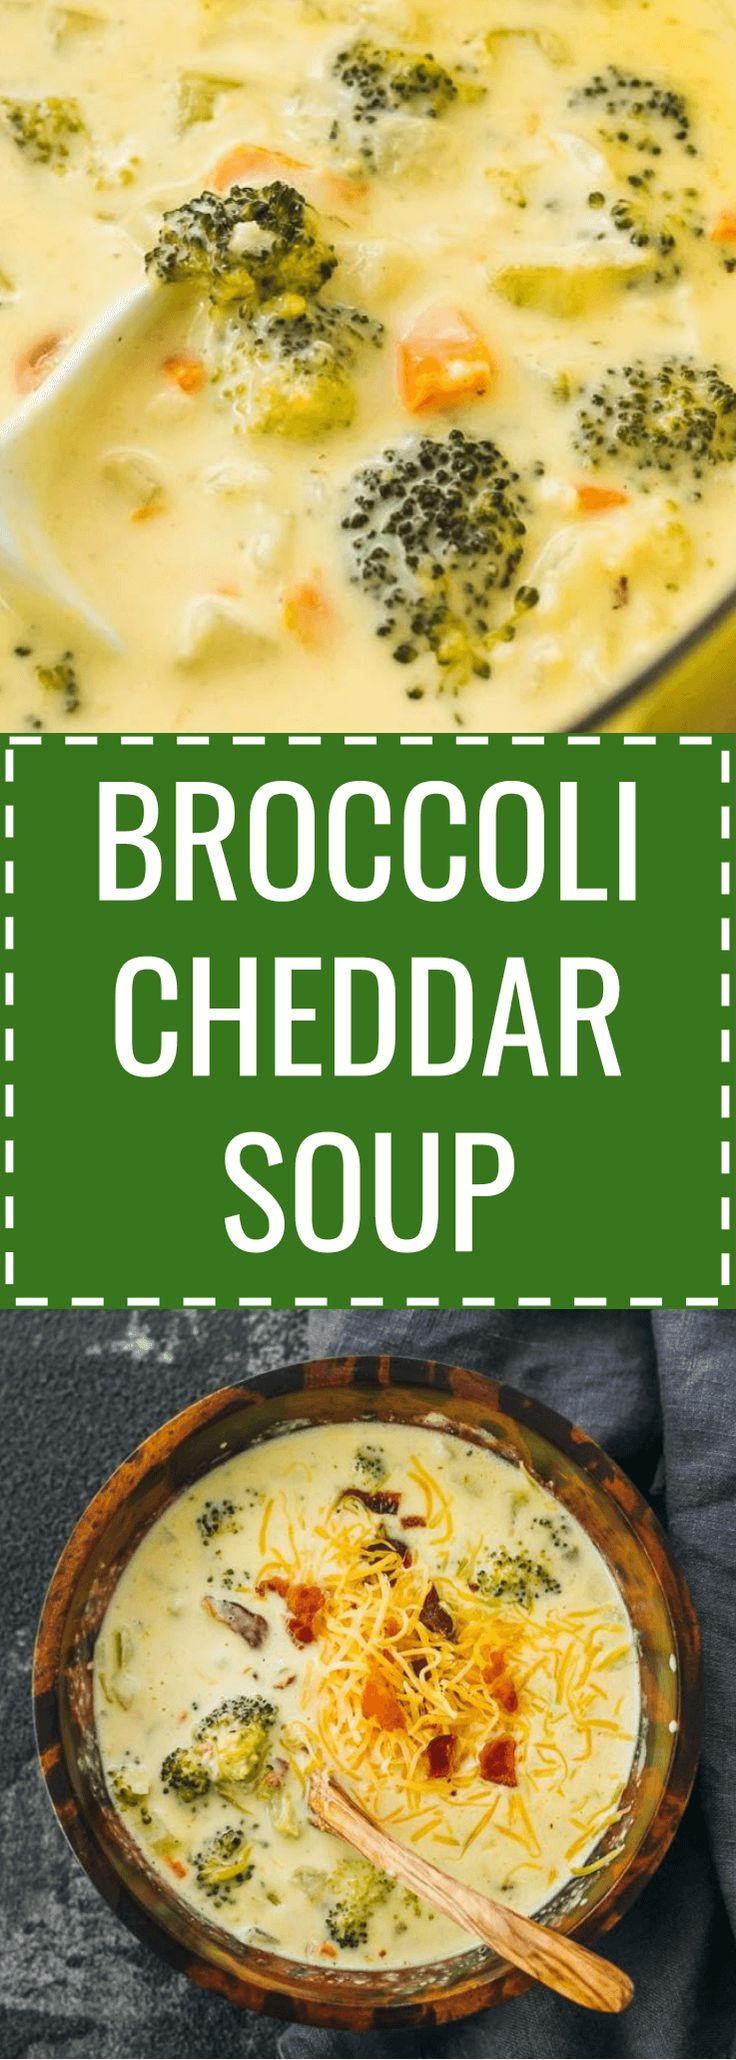 Broccoli cheddar soup - It's easy to make a broccoli cheddar cheese soup from scratch. Healthy and low carb. panera / keto / low carb / diet / atkins / induction / meals / recipes / easy / dinner / lunch / foods / healthy / gluten free / paleo / recipe / best / creamy / homemade / copycat / sides / stove top / simple / copy cat / light / how to make / clean / for a crowd / with bacon / chunky / loaded / meal / no flour / dutch oven / families / cooking / winter #soup #keto